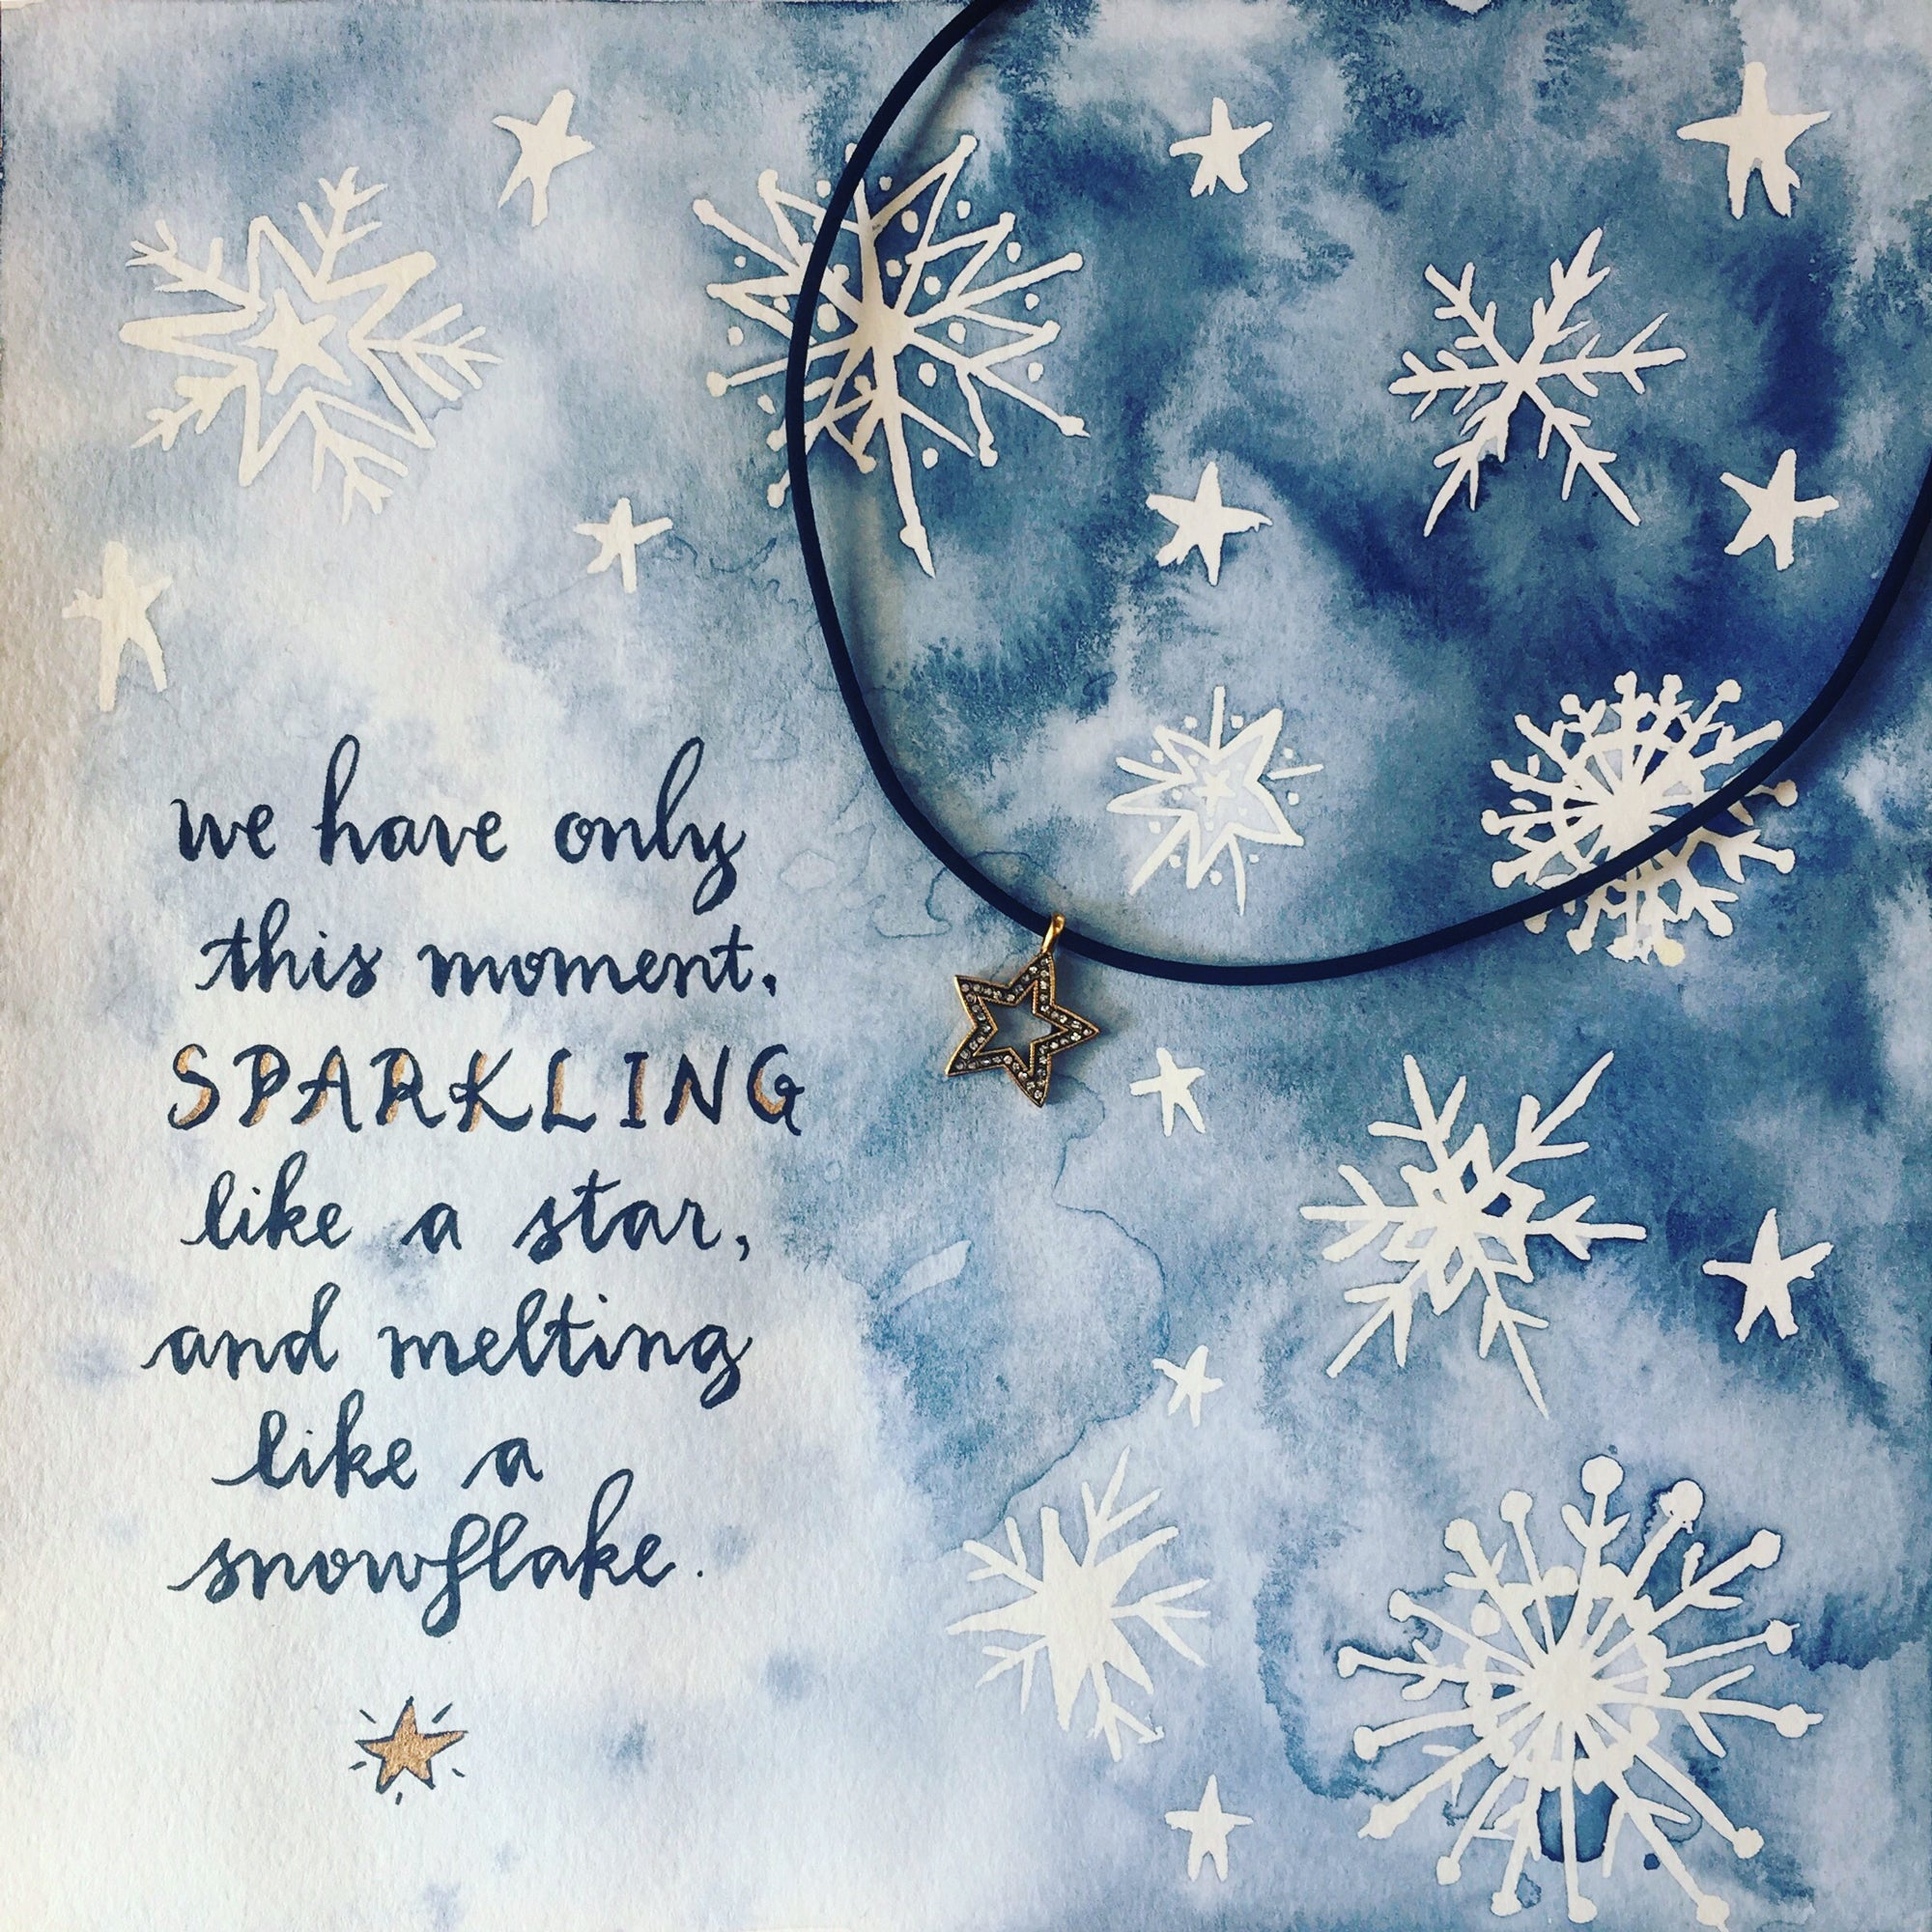 #SequinSayings - Snowflakes and Stars